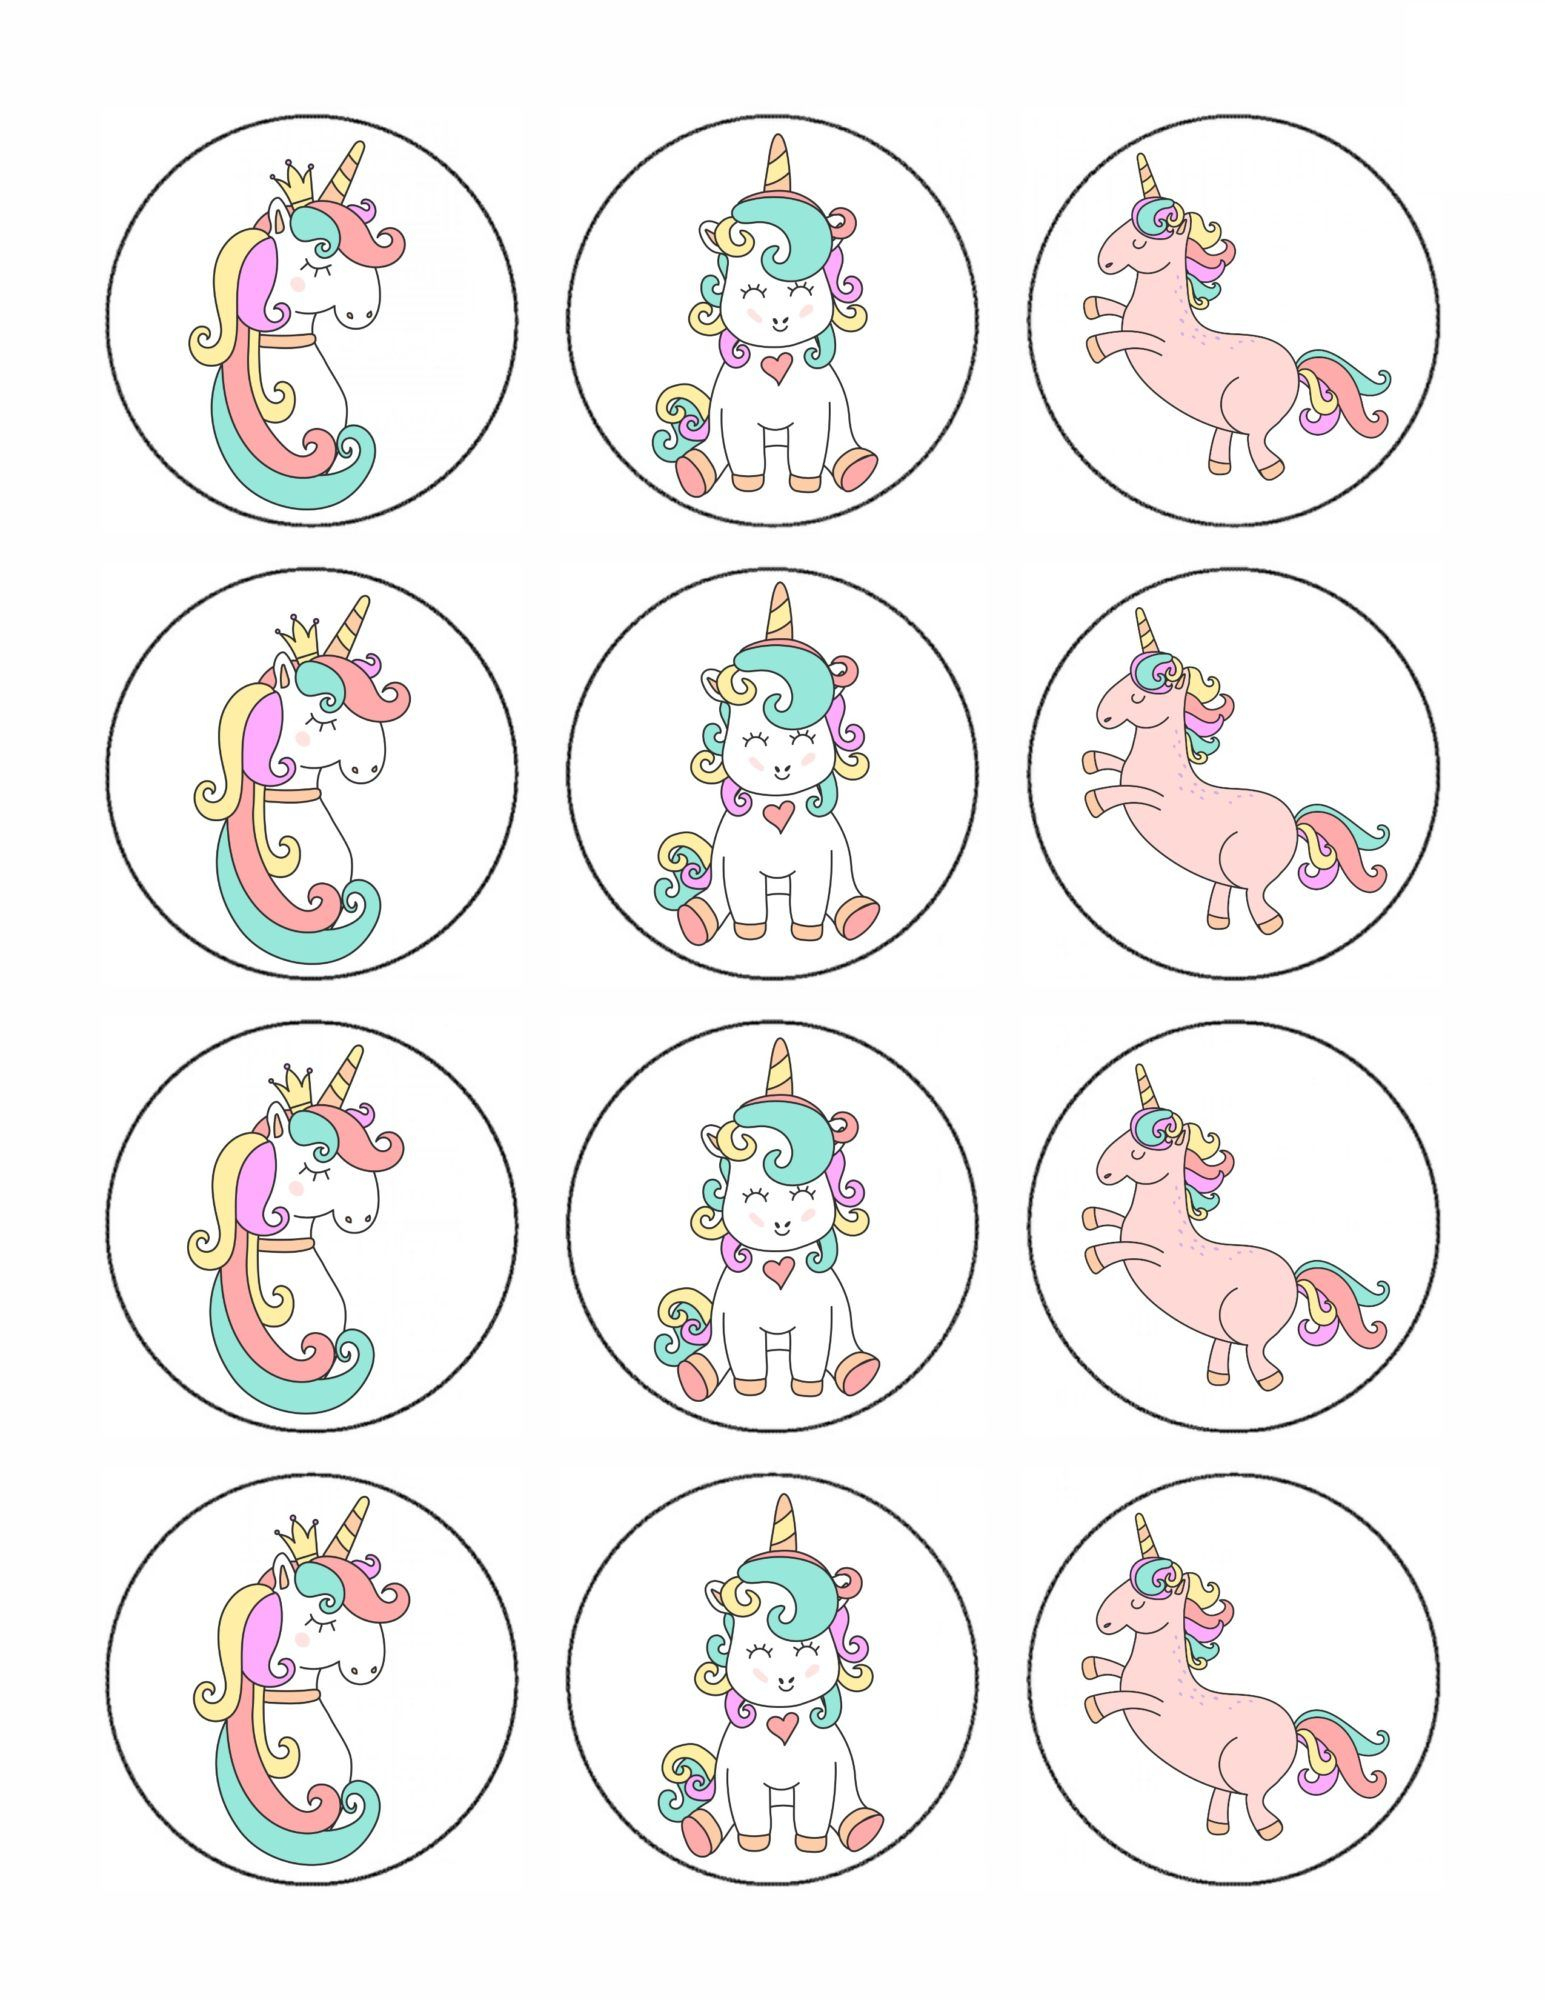 Free Printable Unicorn Cupcake Toppers | Kelsey's Birthday Ideas - Free Printable Unicorn Cupcake Toppers